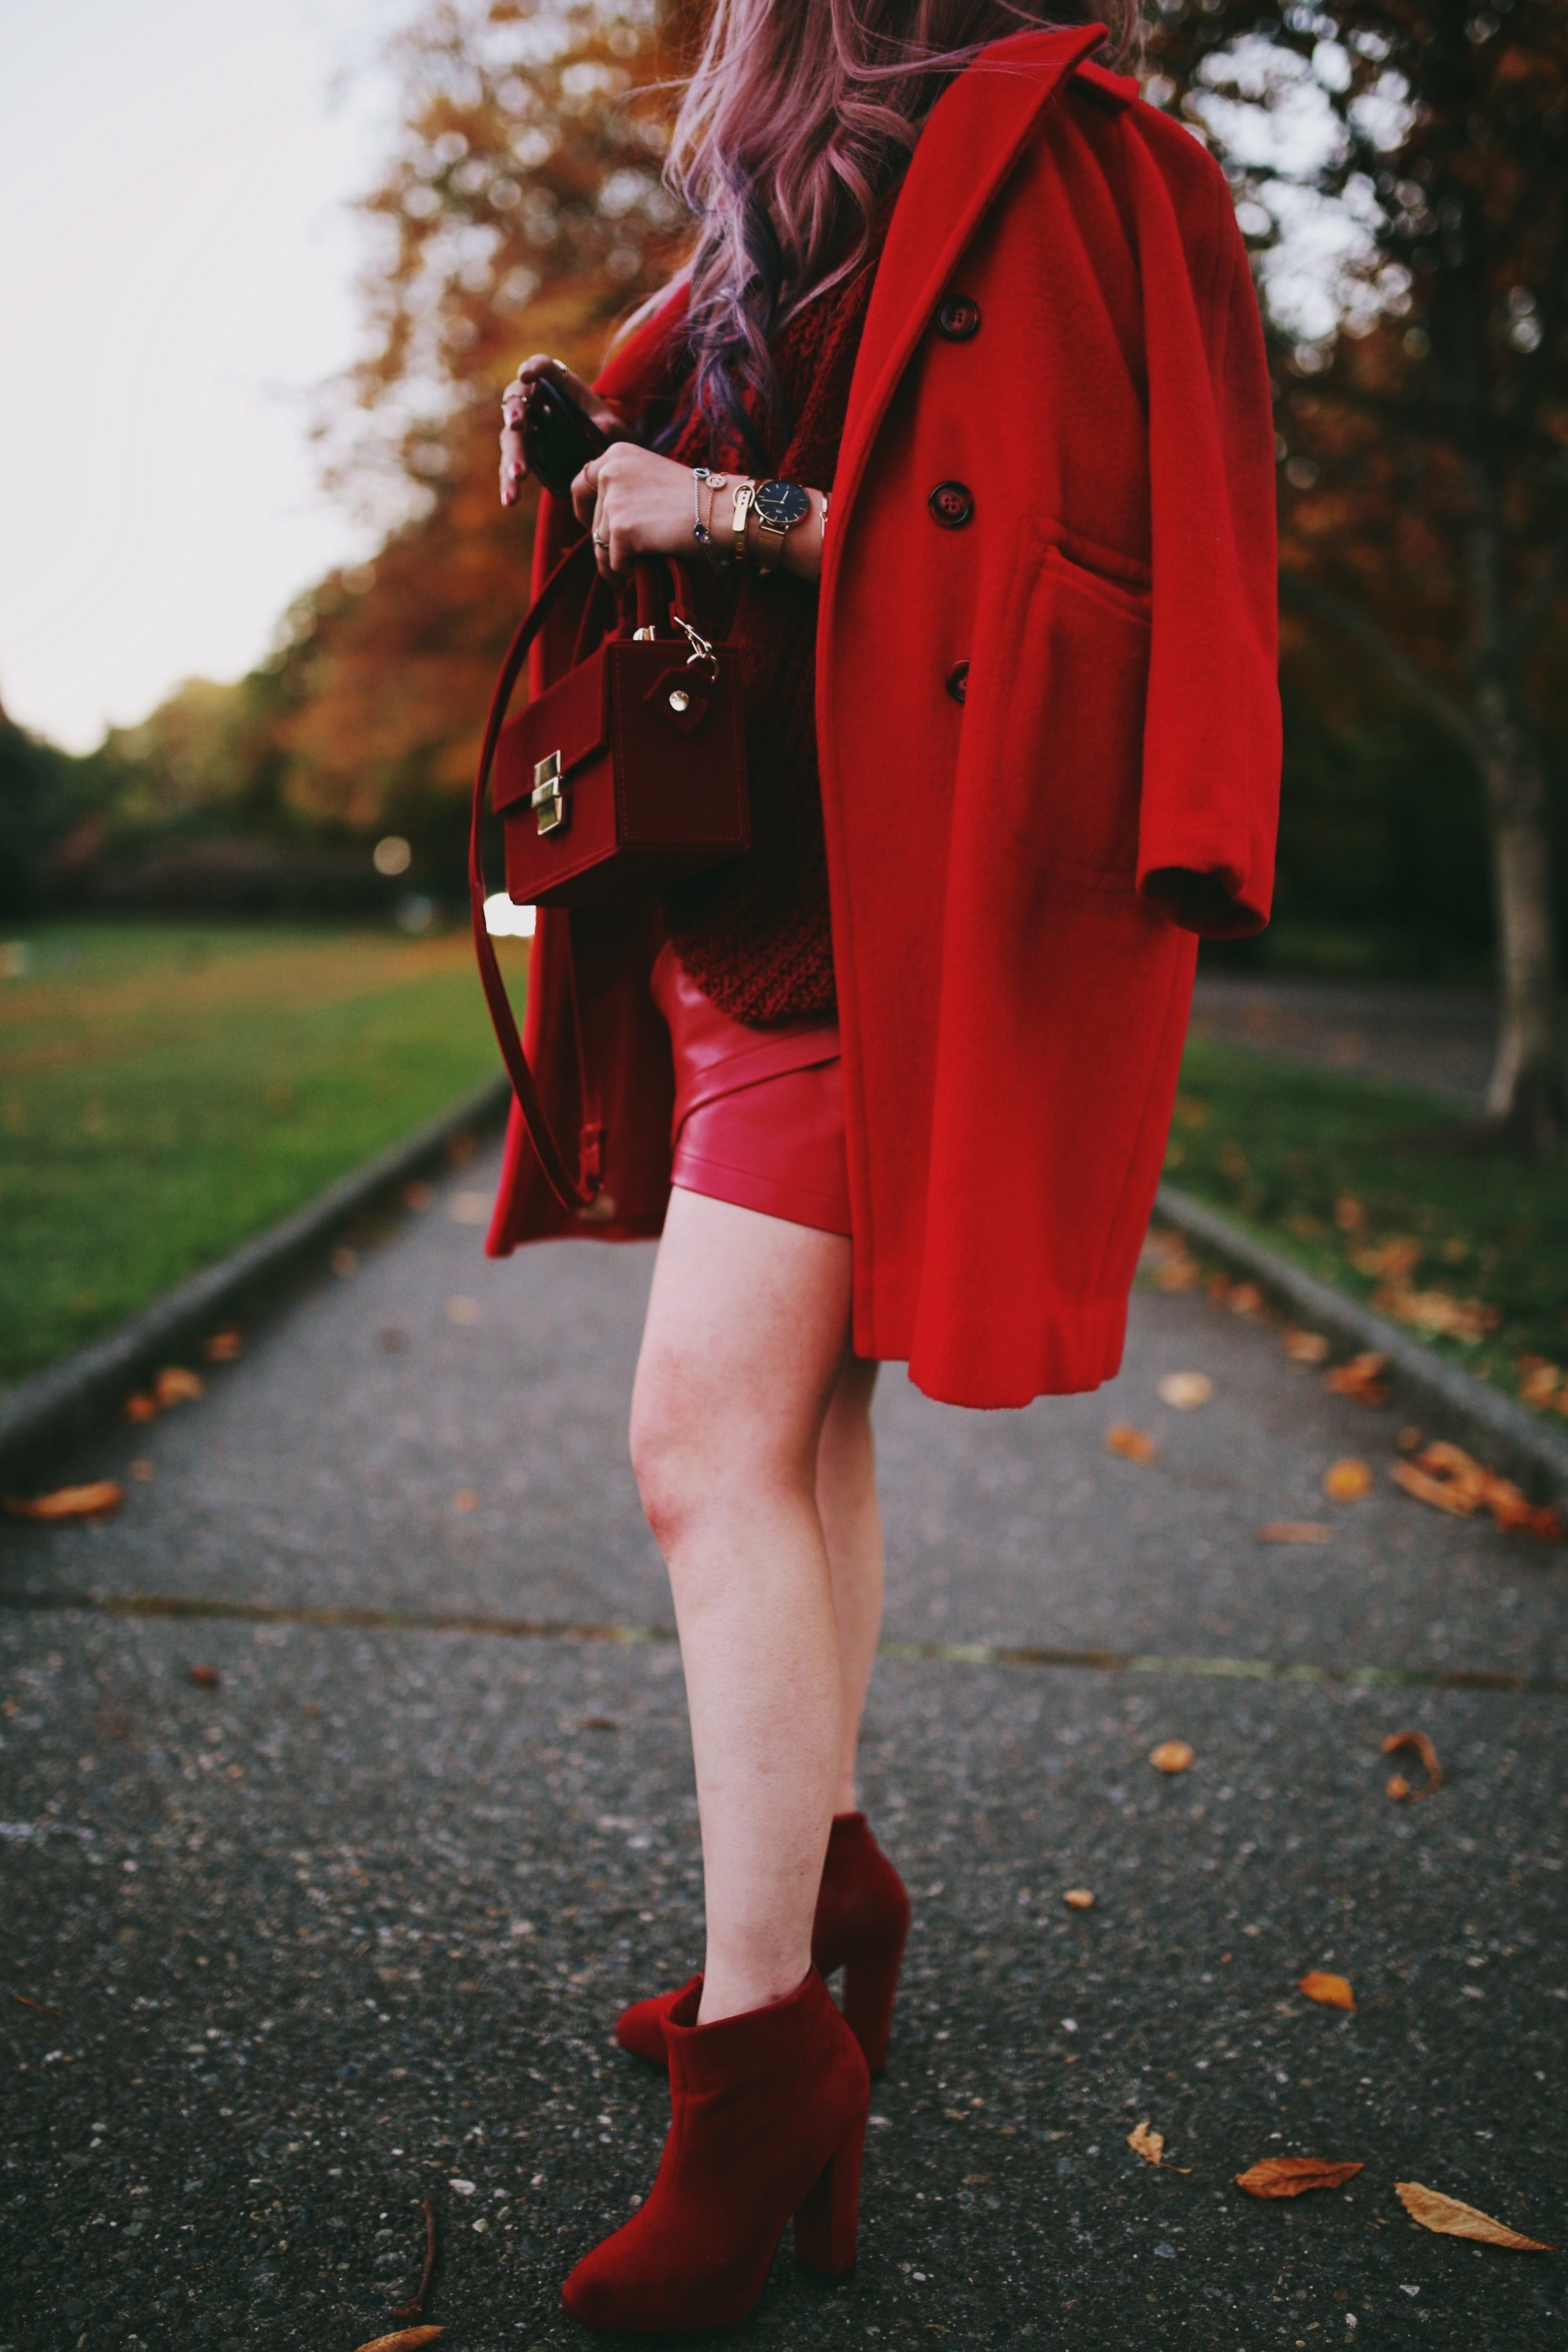 Swarovski remix collection bracelets-Vintage Red Coat-Red oversized sweater-zara faux leather red mini skirt-Nasty Gal Red ankle Boots-Free People Red framed sunglasses-kara red boxy bag-Daniel Wellington rose gold petite watch-Aikas Love Closet-Seattle style fashion blogger-japanese-pink hair-unicorn hair 2